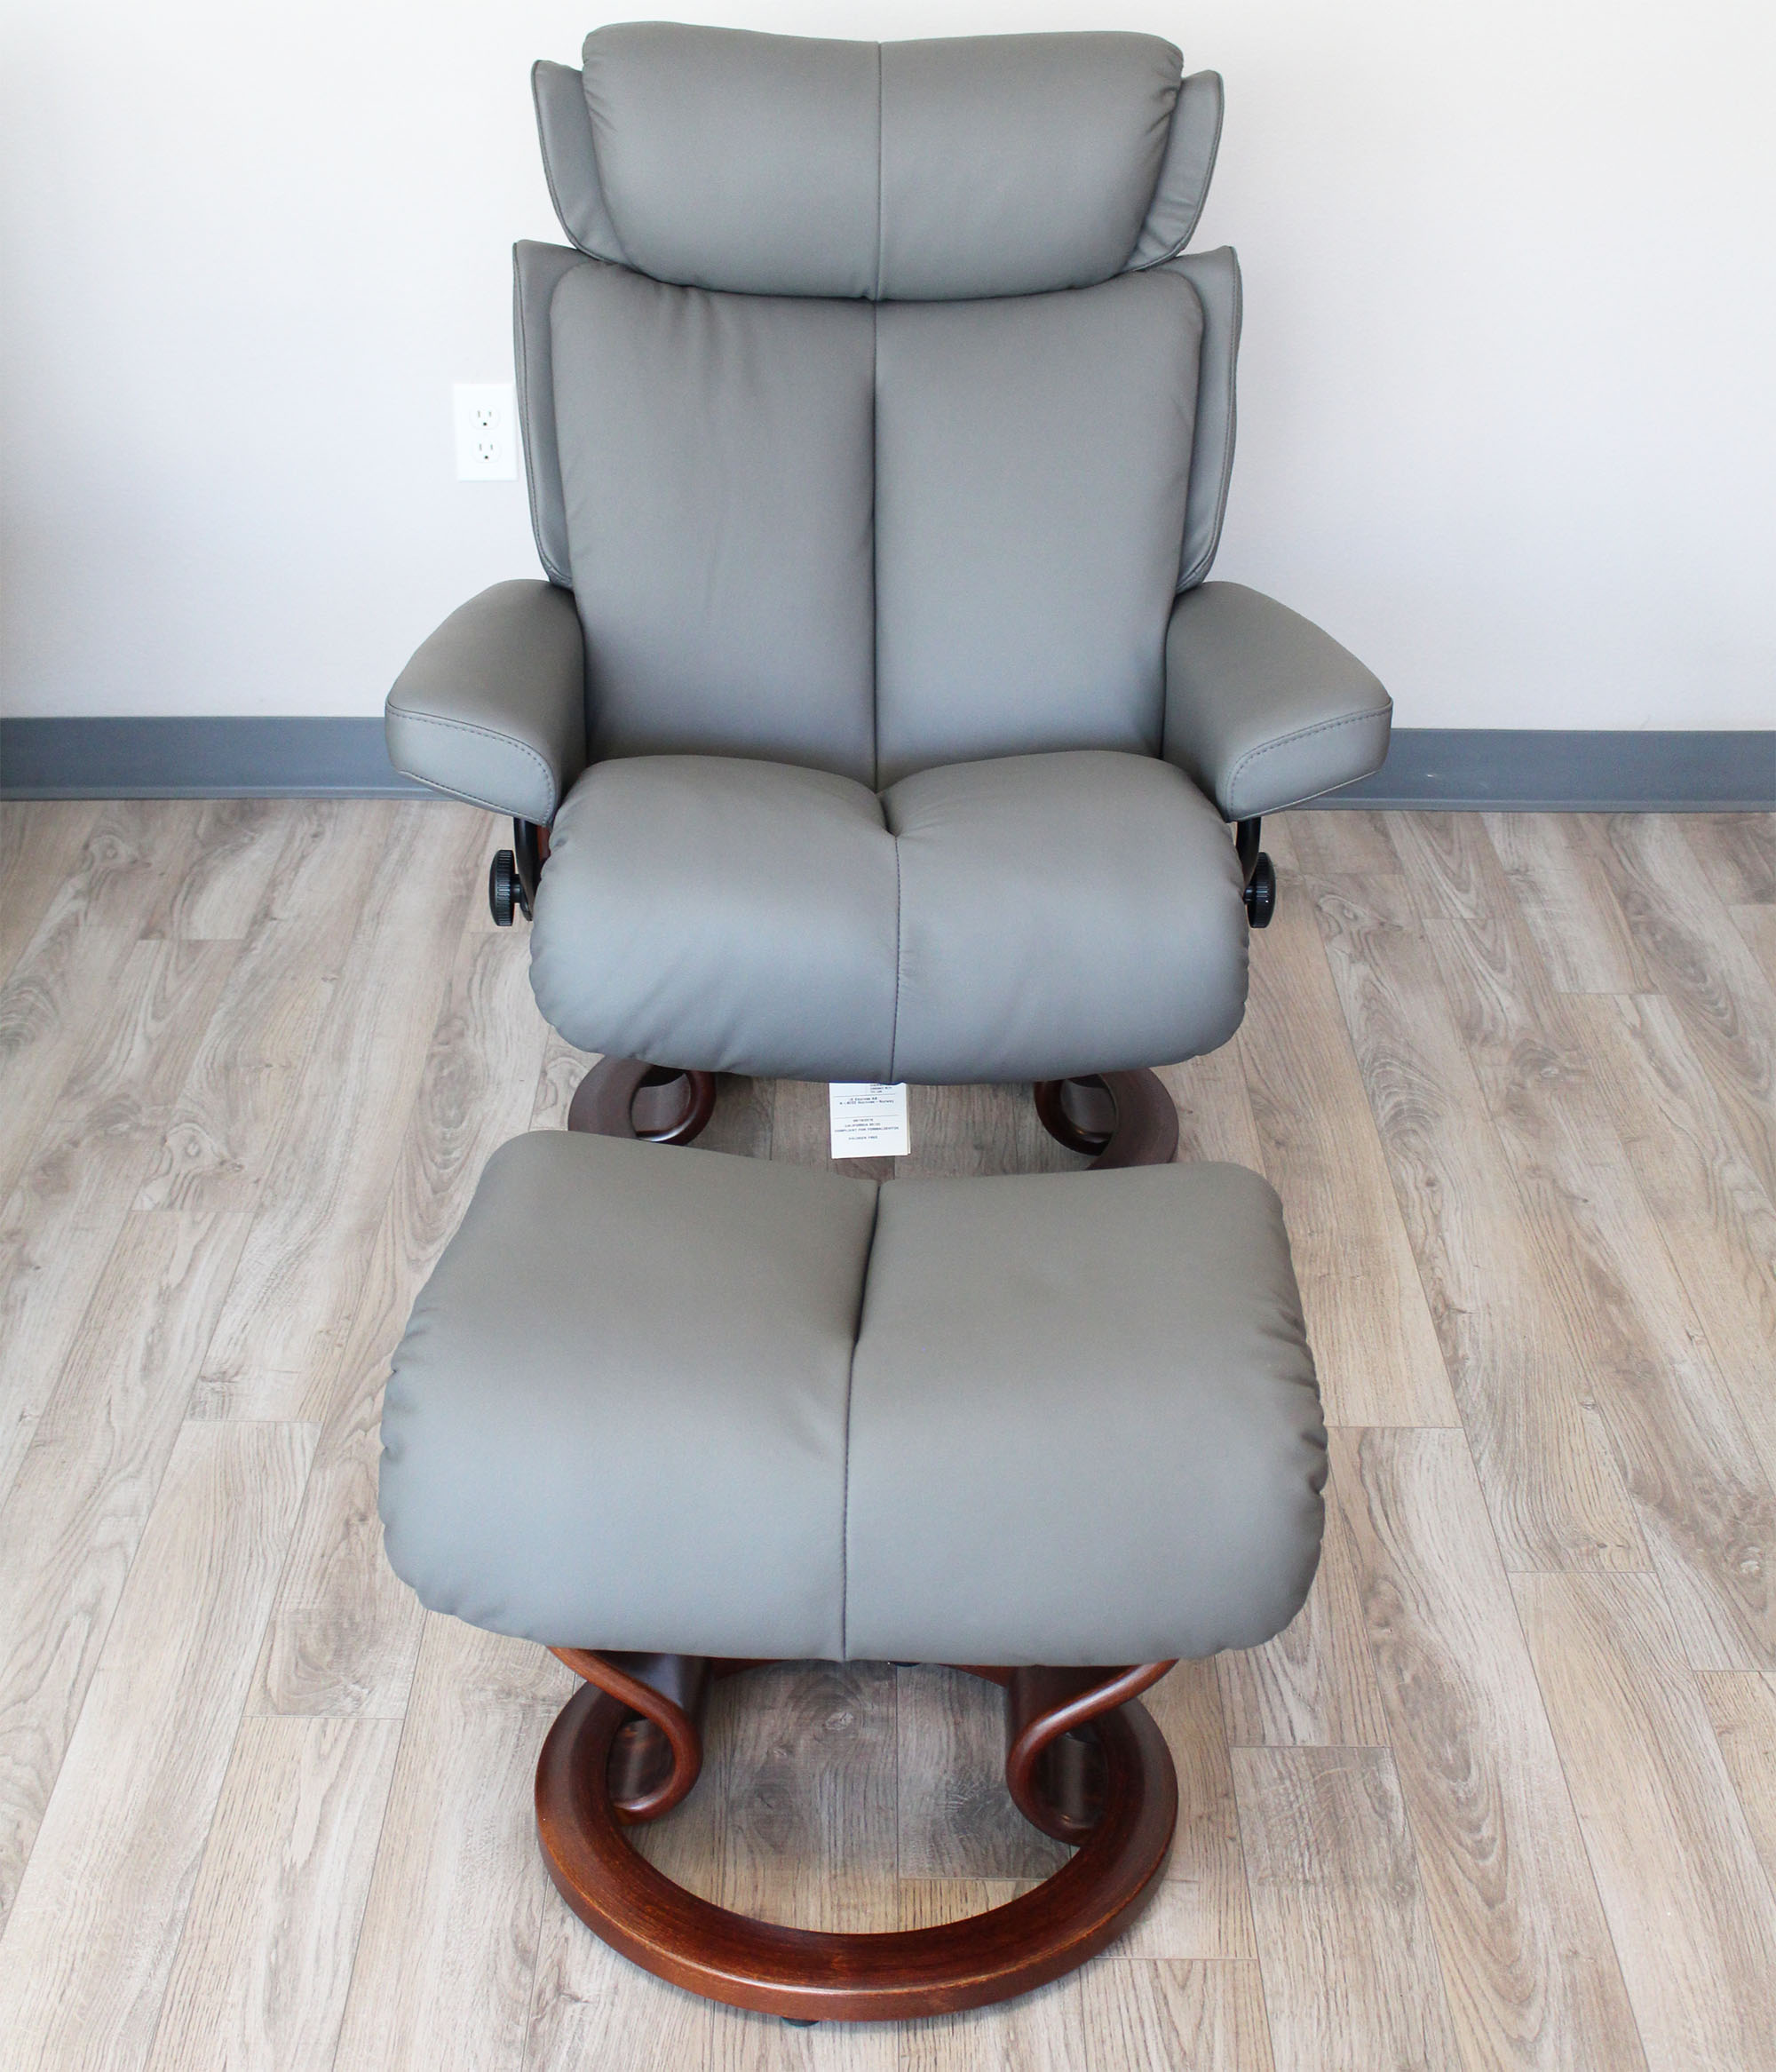 Ekornes chairs for sale stressless paloma indigo leather by ekornes - Stressless Magic Paloma Metal Grey Color Leather Recliner Chair And Ottoman Stressless Magic Family Recliner Chair Dimensions From Ekornes